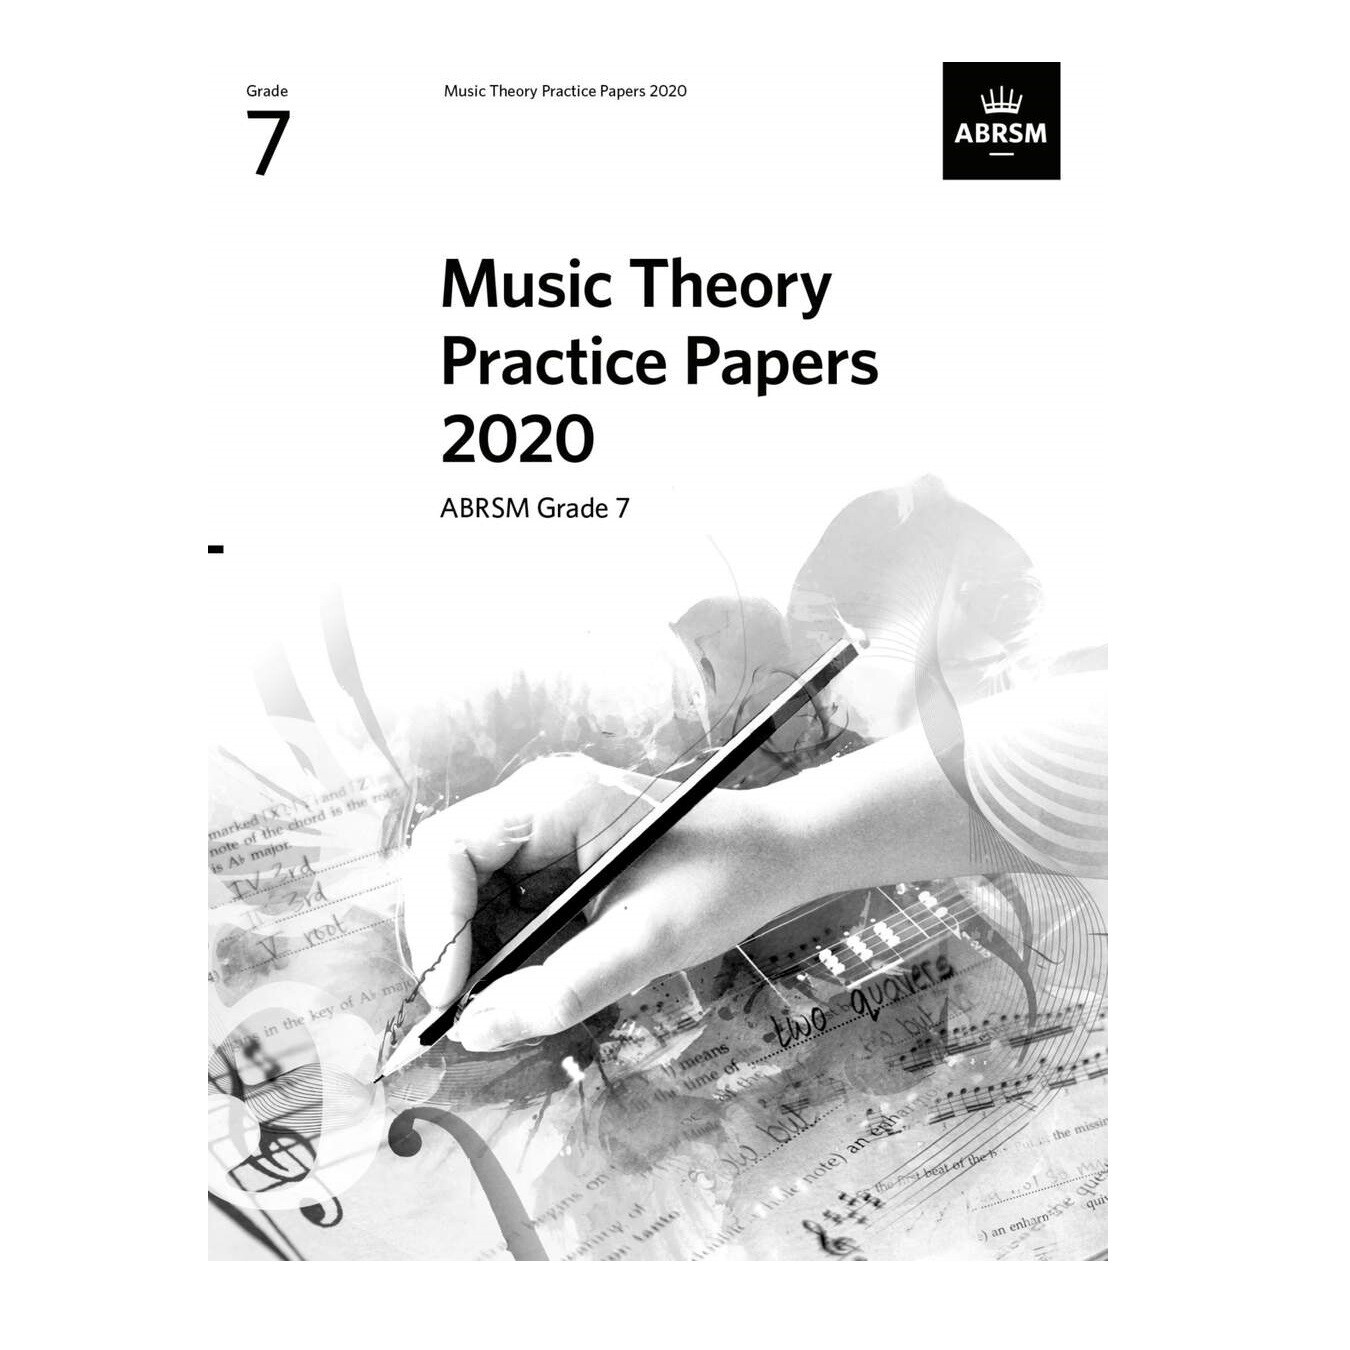 ABRSM Music Theory Practice Papers (new 2020 format) - Grade 7